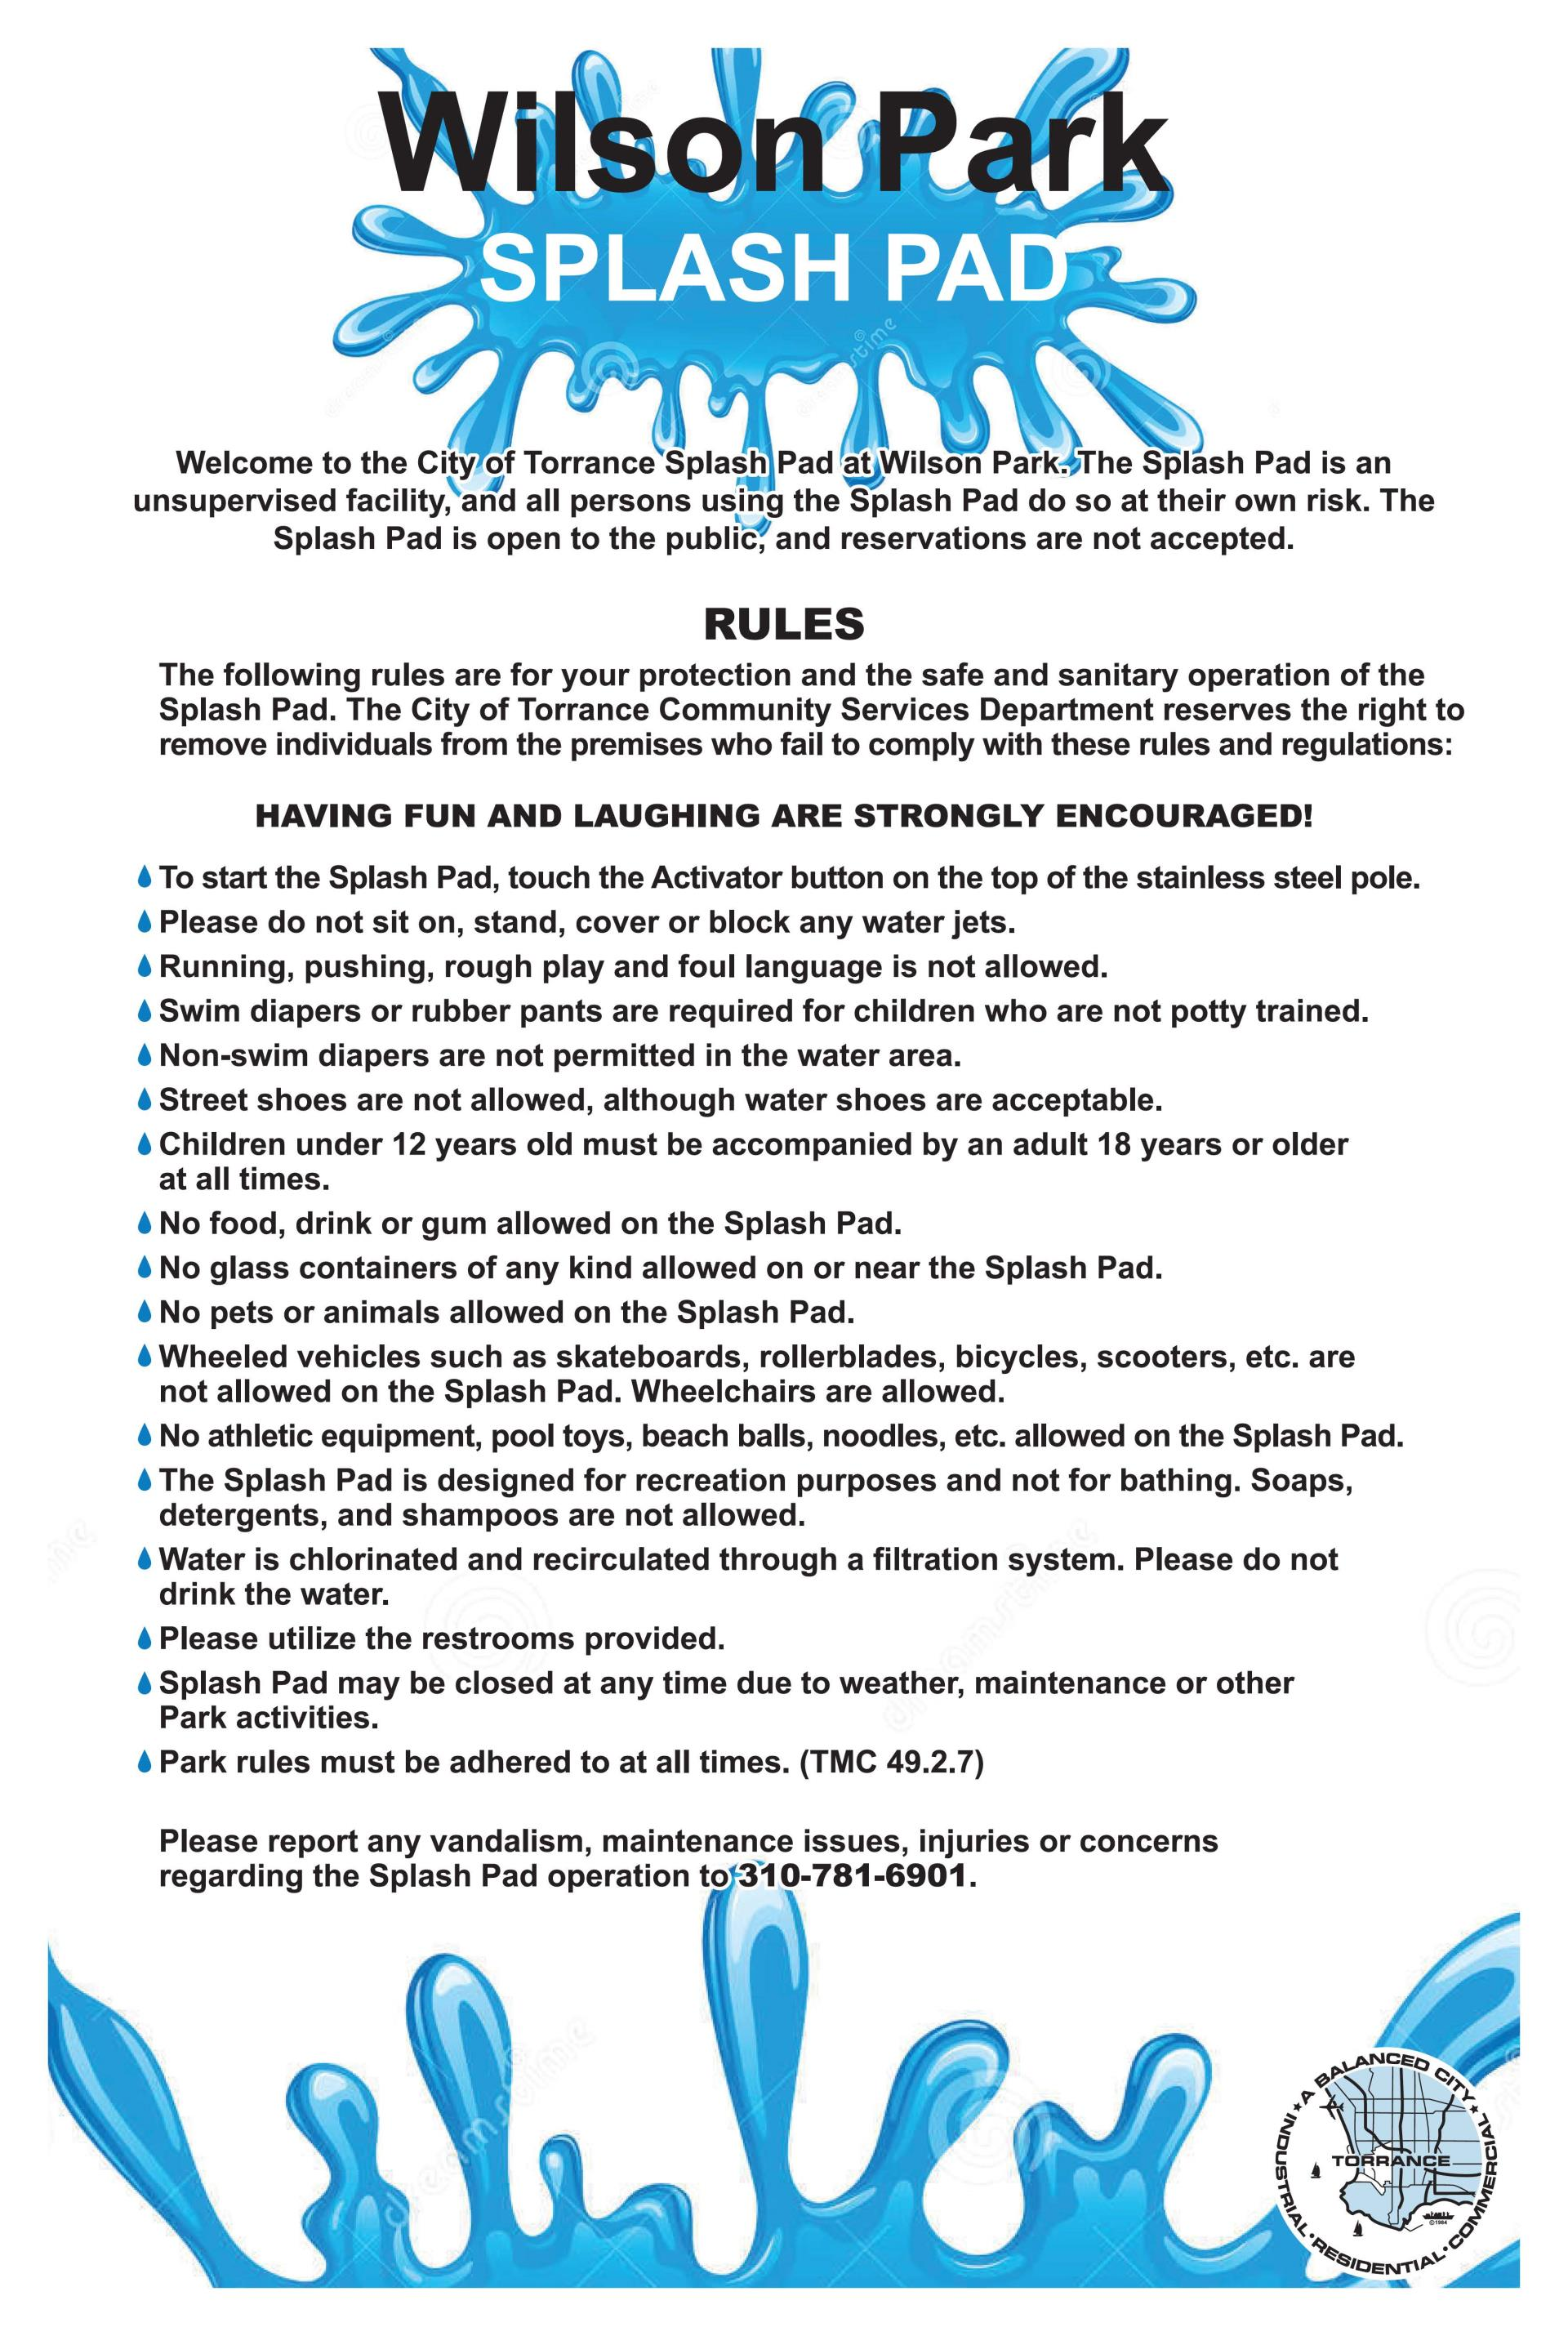 Rules_Splashpad_Final